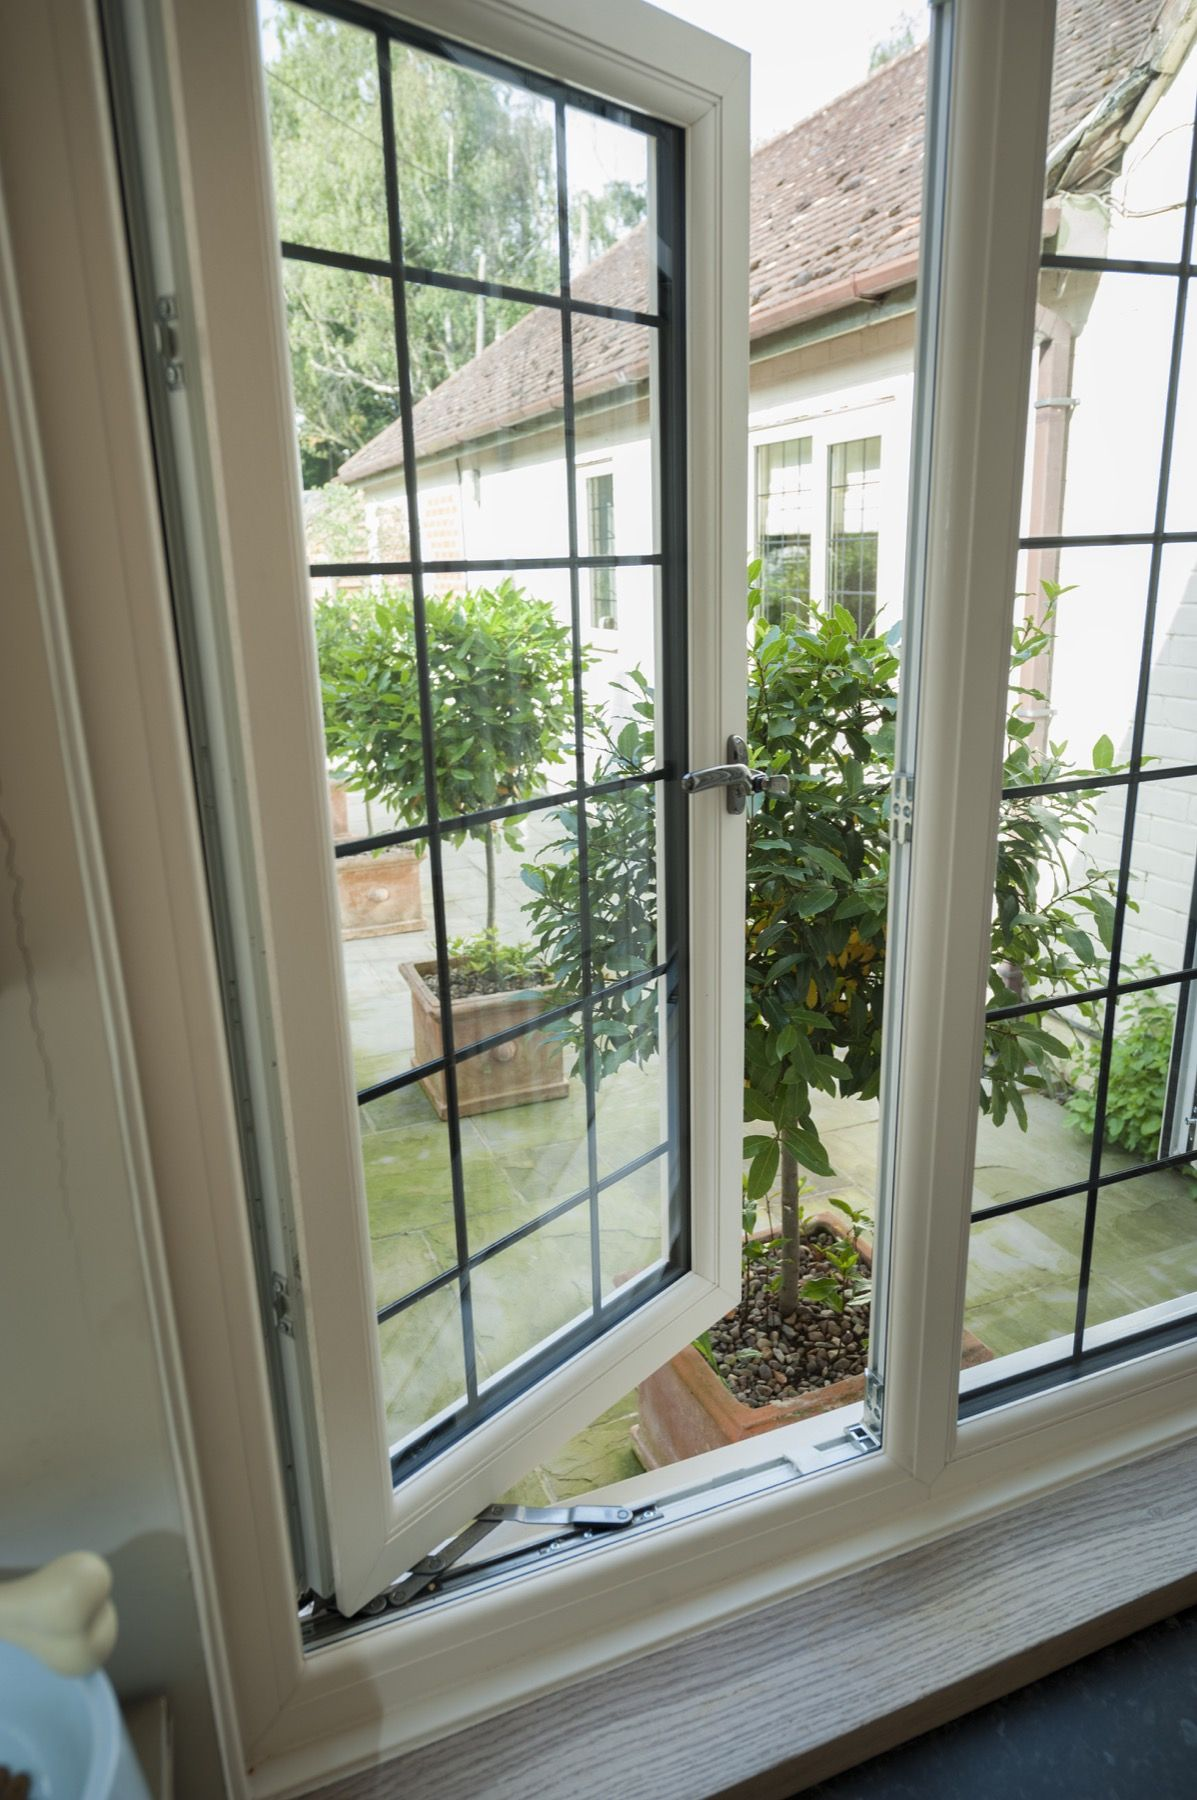 energy efficient windows prices casement aluminium windows in hampshire at great prices get quote wessex